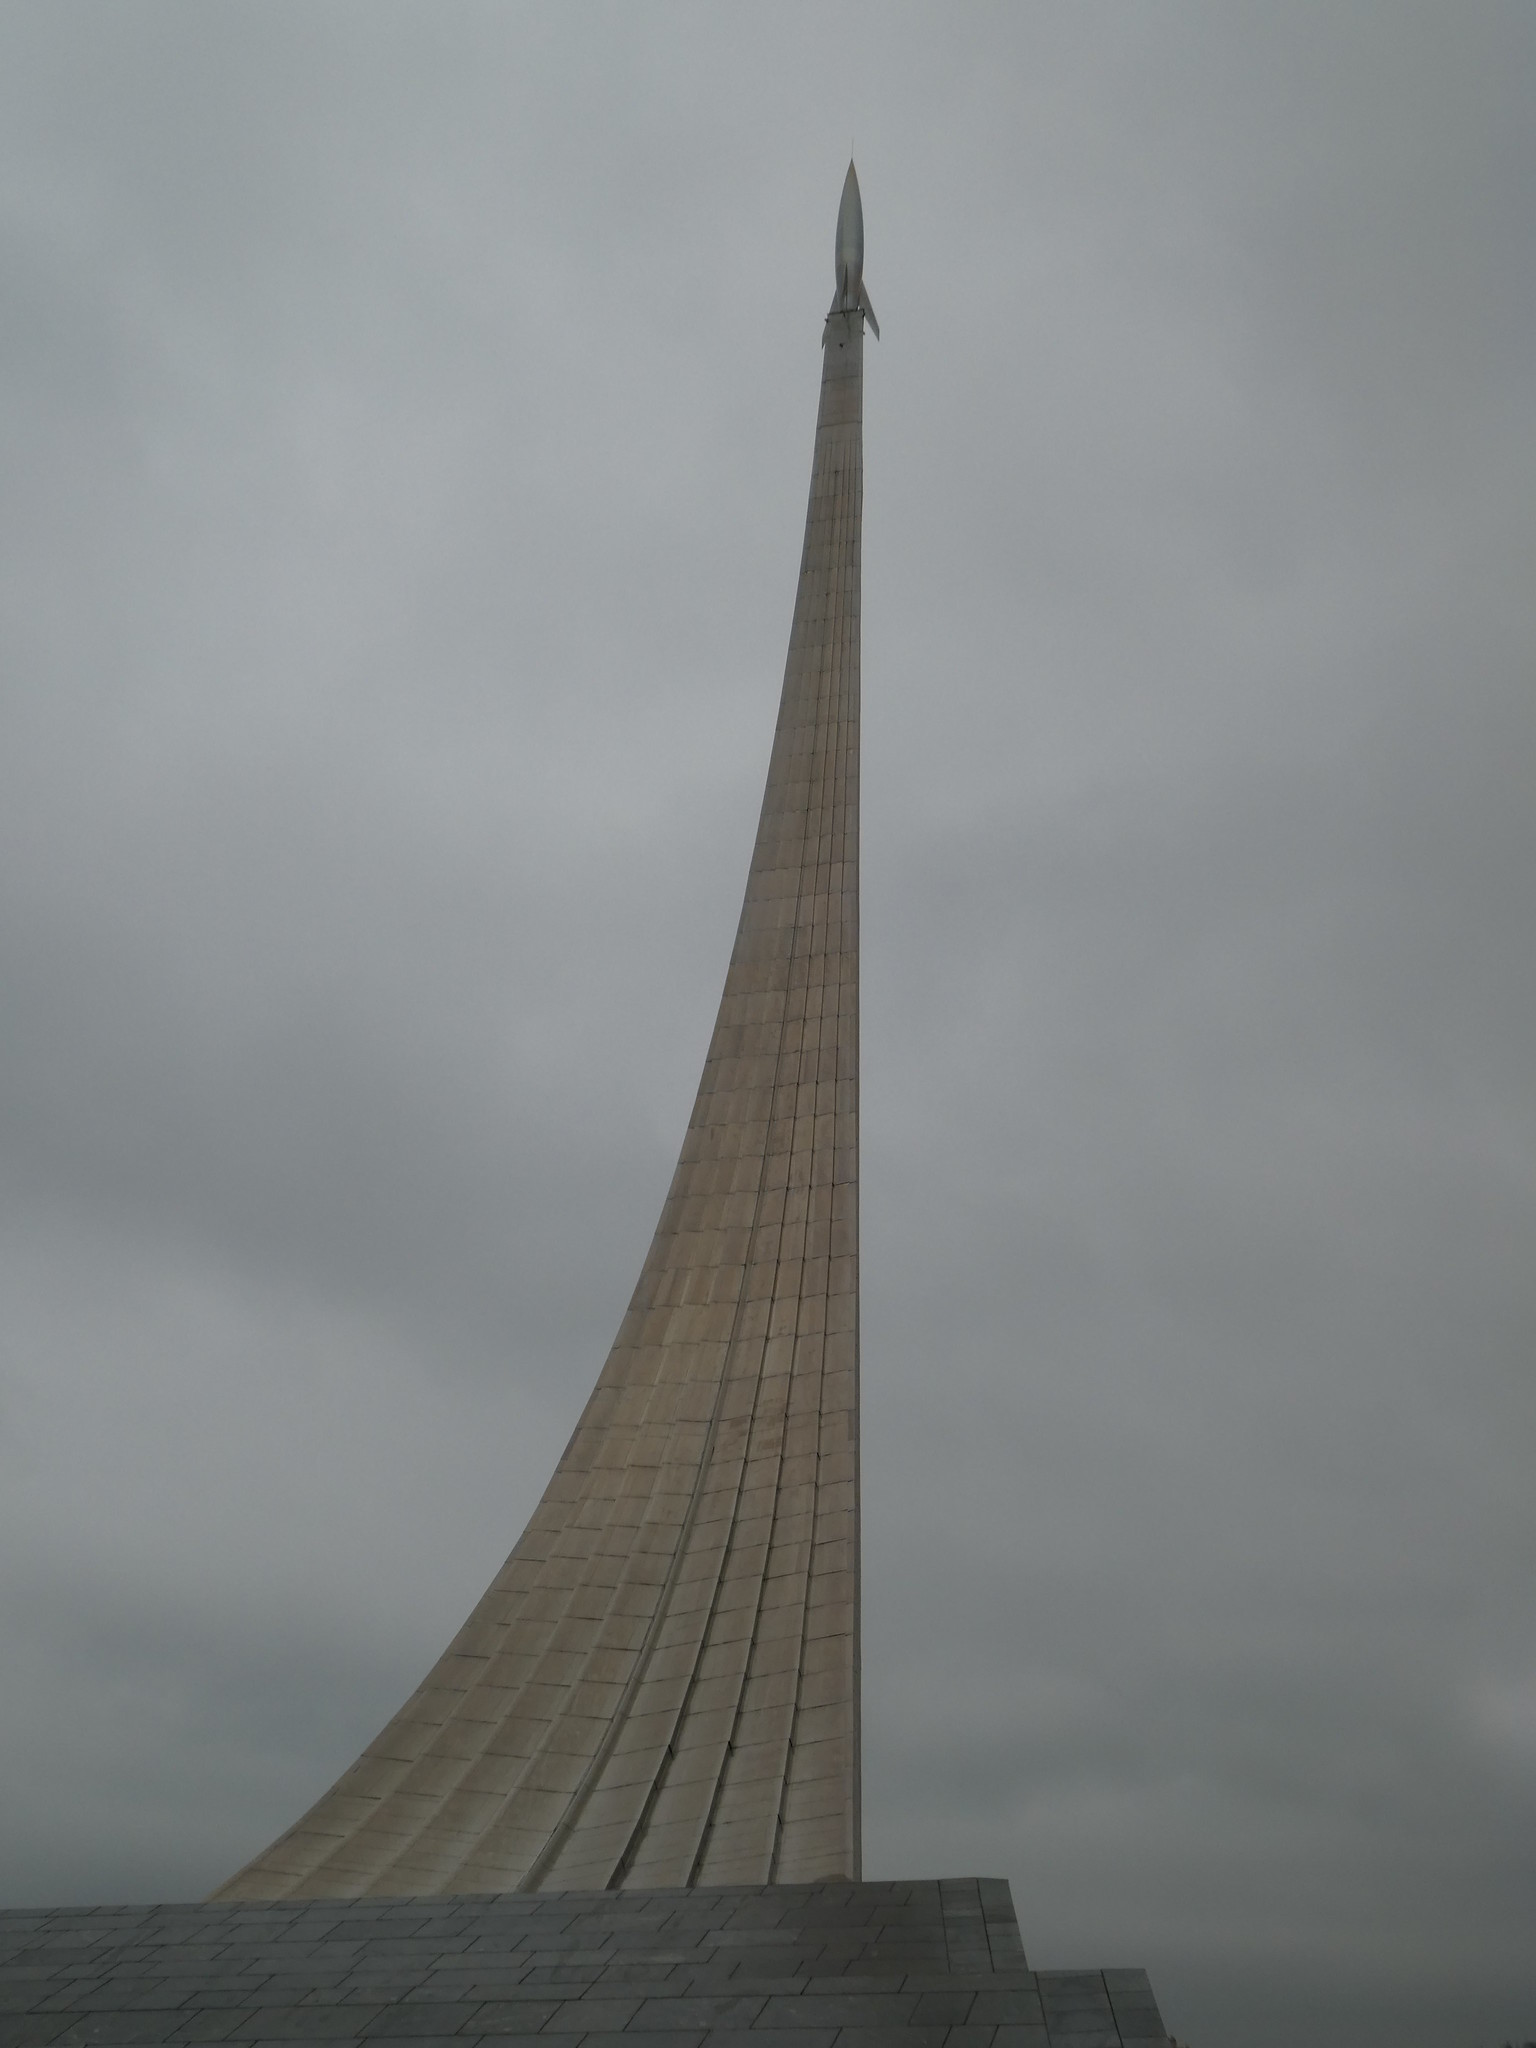 Monument to the Conquerors of Space VDNKh Park, Moscow